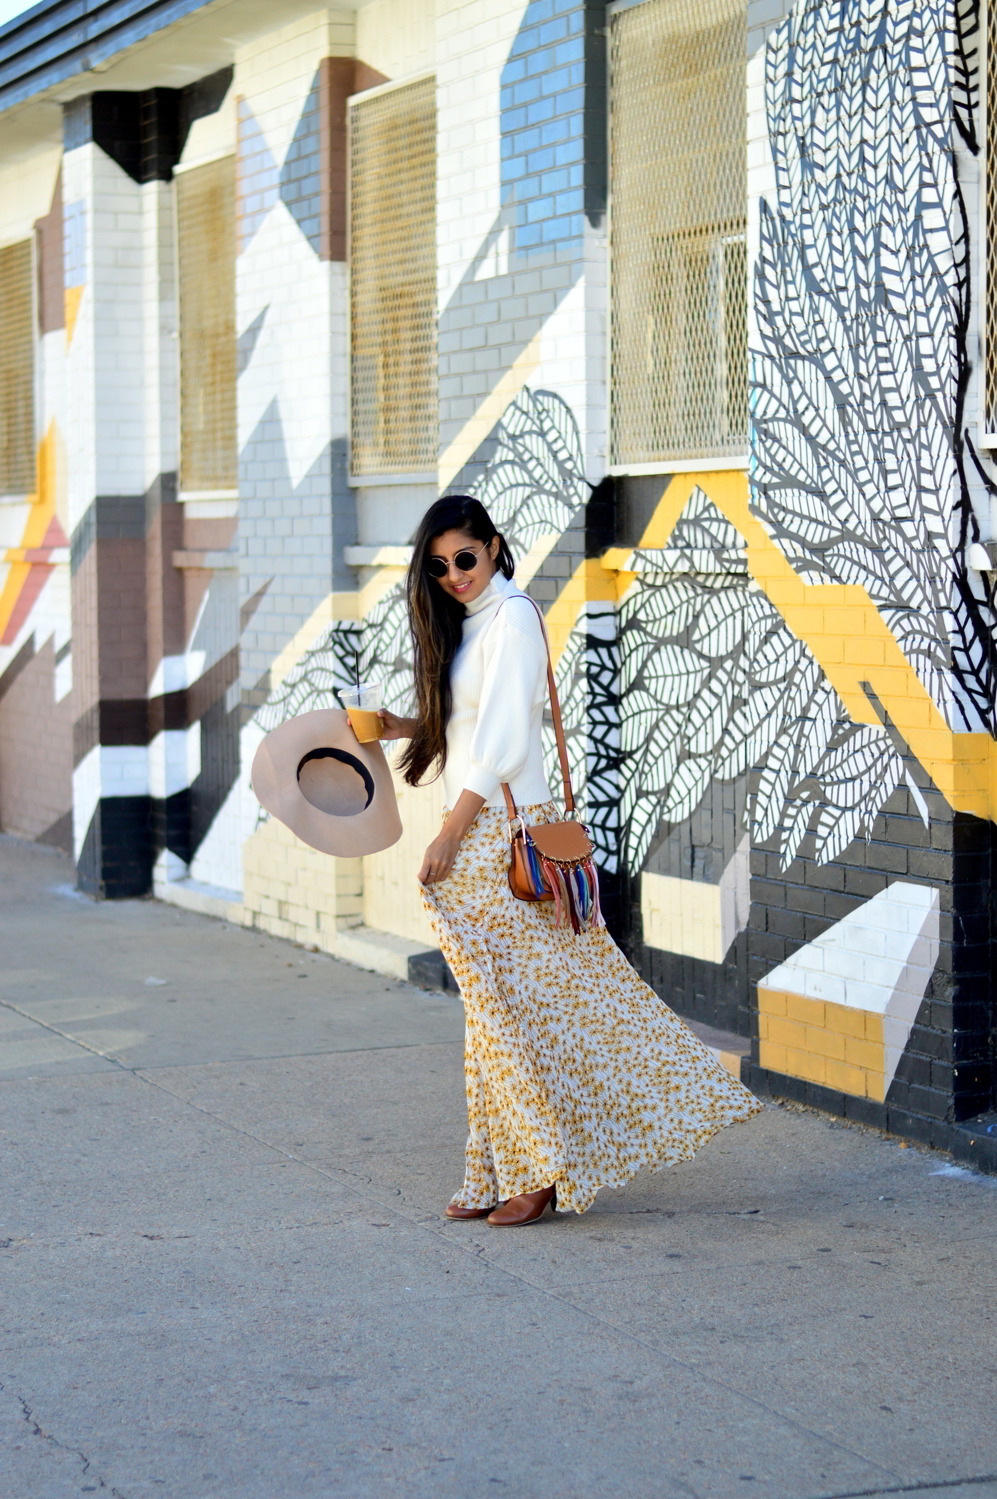 turtleneck-sweater-boho-floral-maxi-dress-travel-Denver-style 2